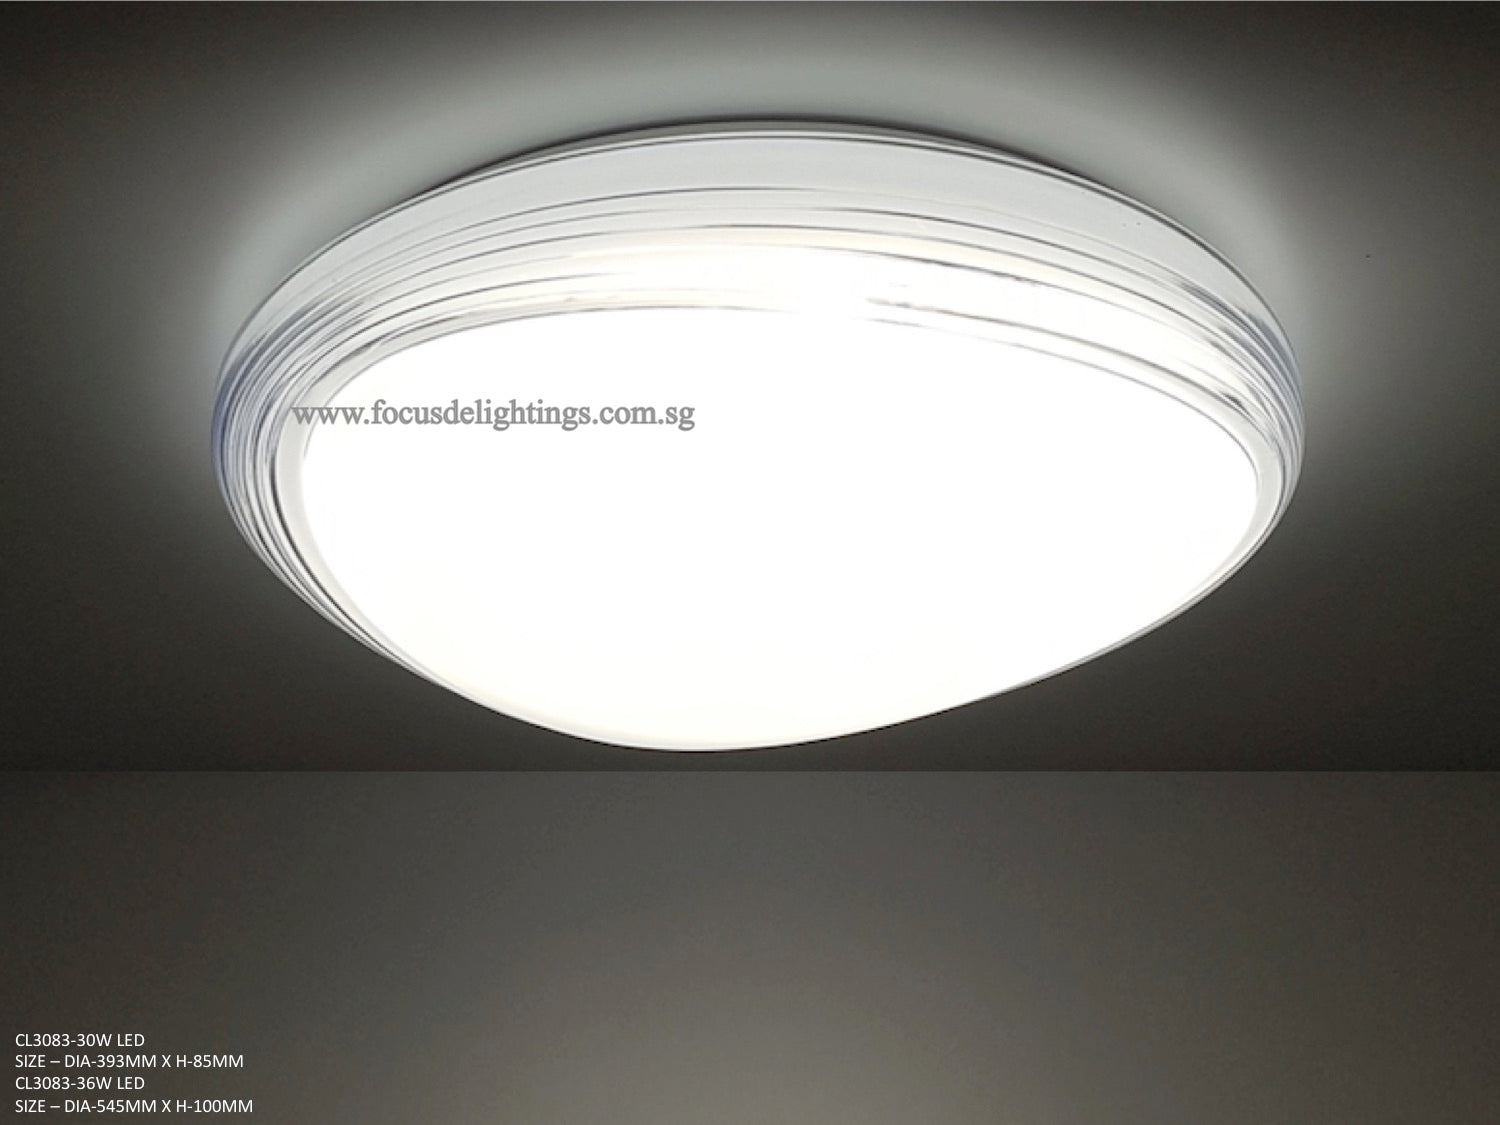 westmen semi surface mount collections flush mounted cbaf grid lighting light ceiling lights ceilings fixtures